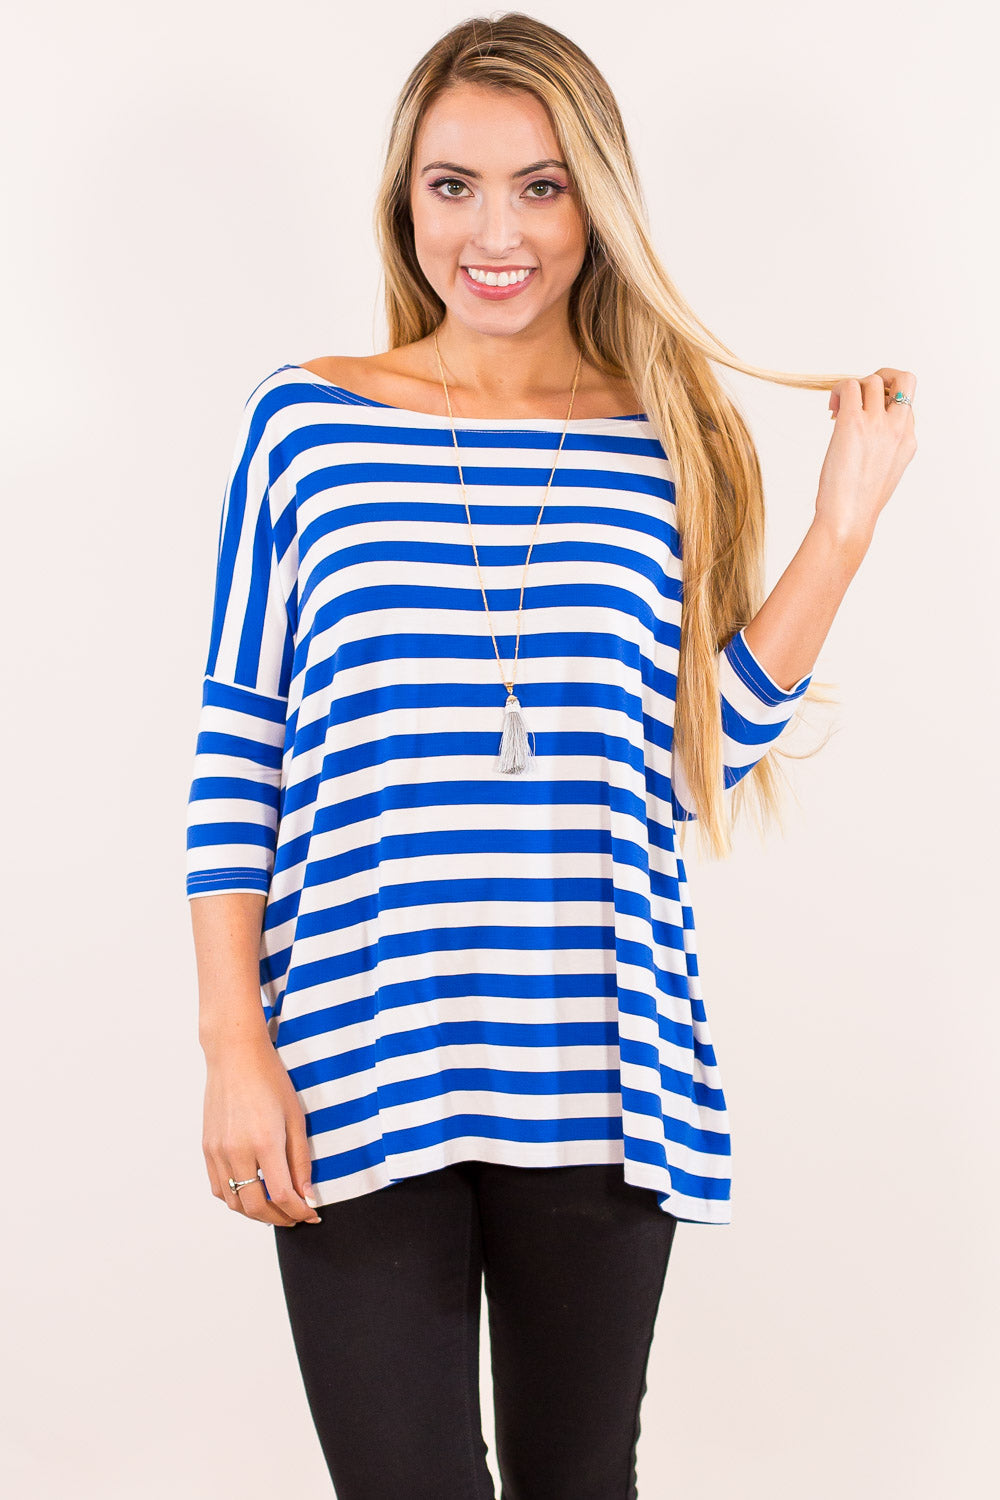 3/4 Sleeve Thick Striped Piko Top - White/Royal - Piko Clothing